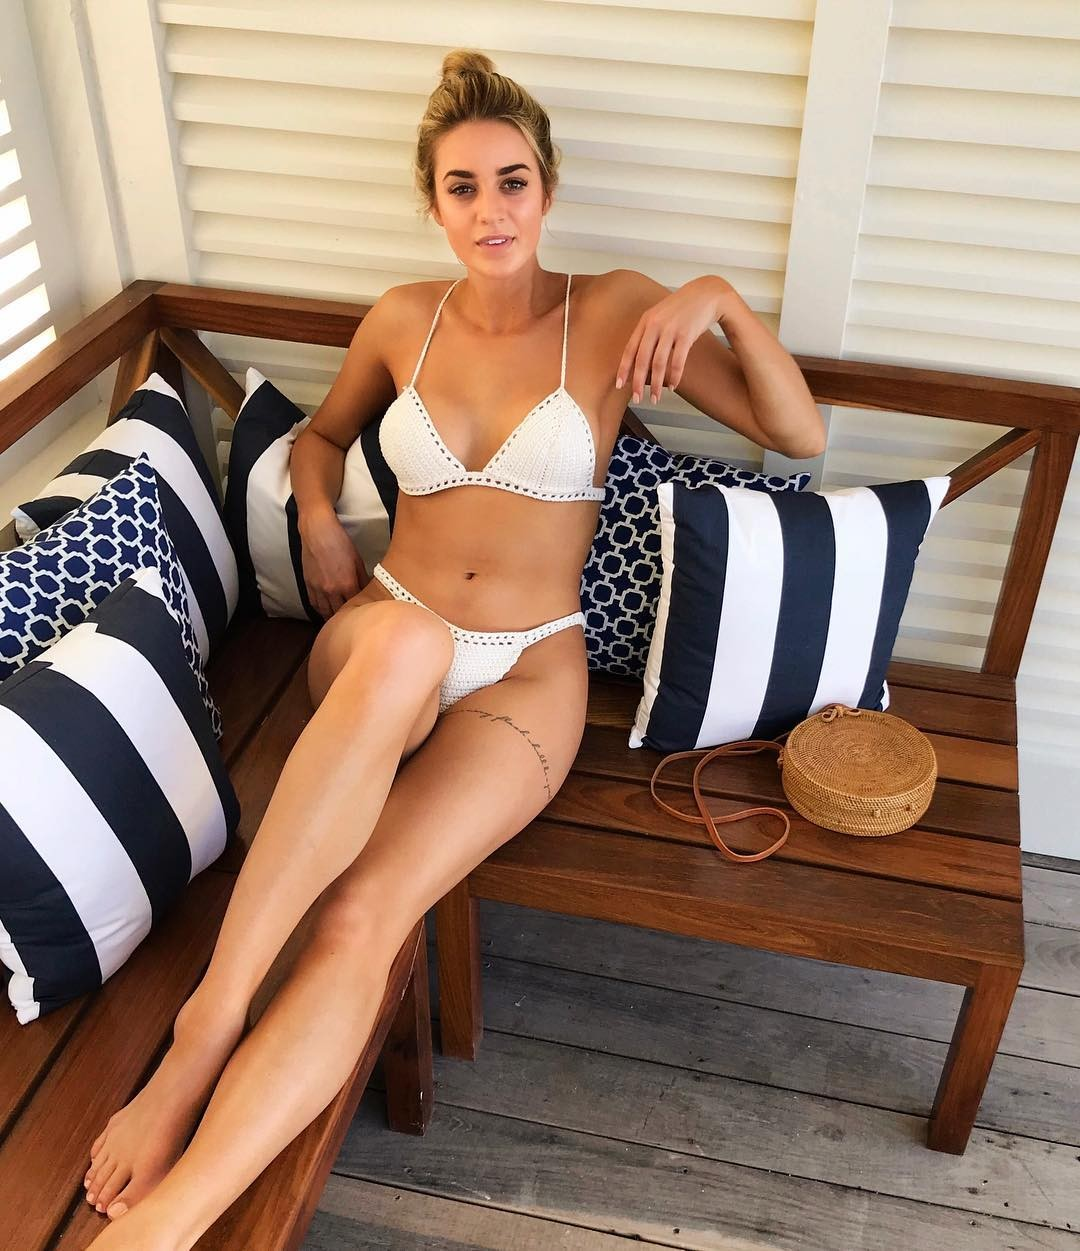 Allie Ayers Nude allie ayers - page 4 pictures, naked, oops, topless, bikini